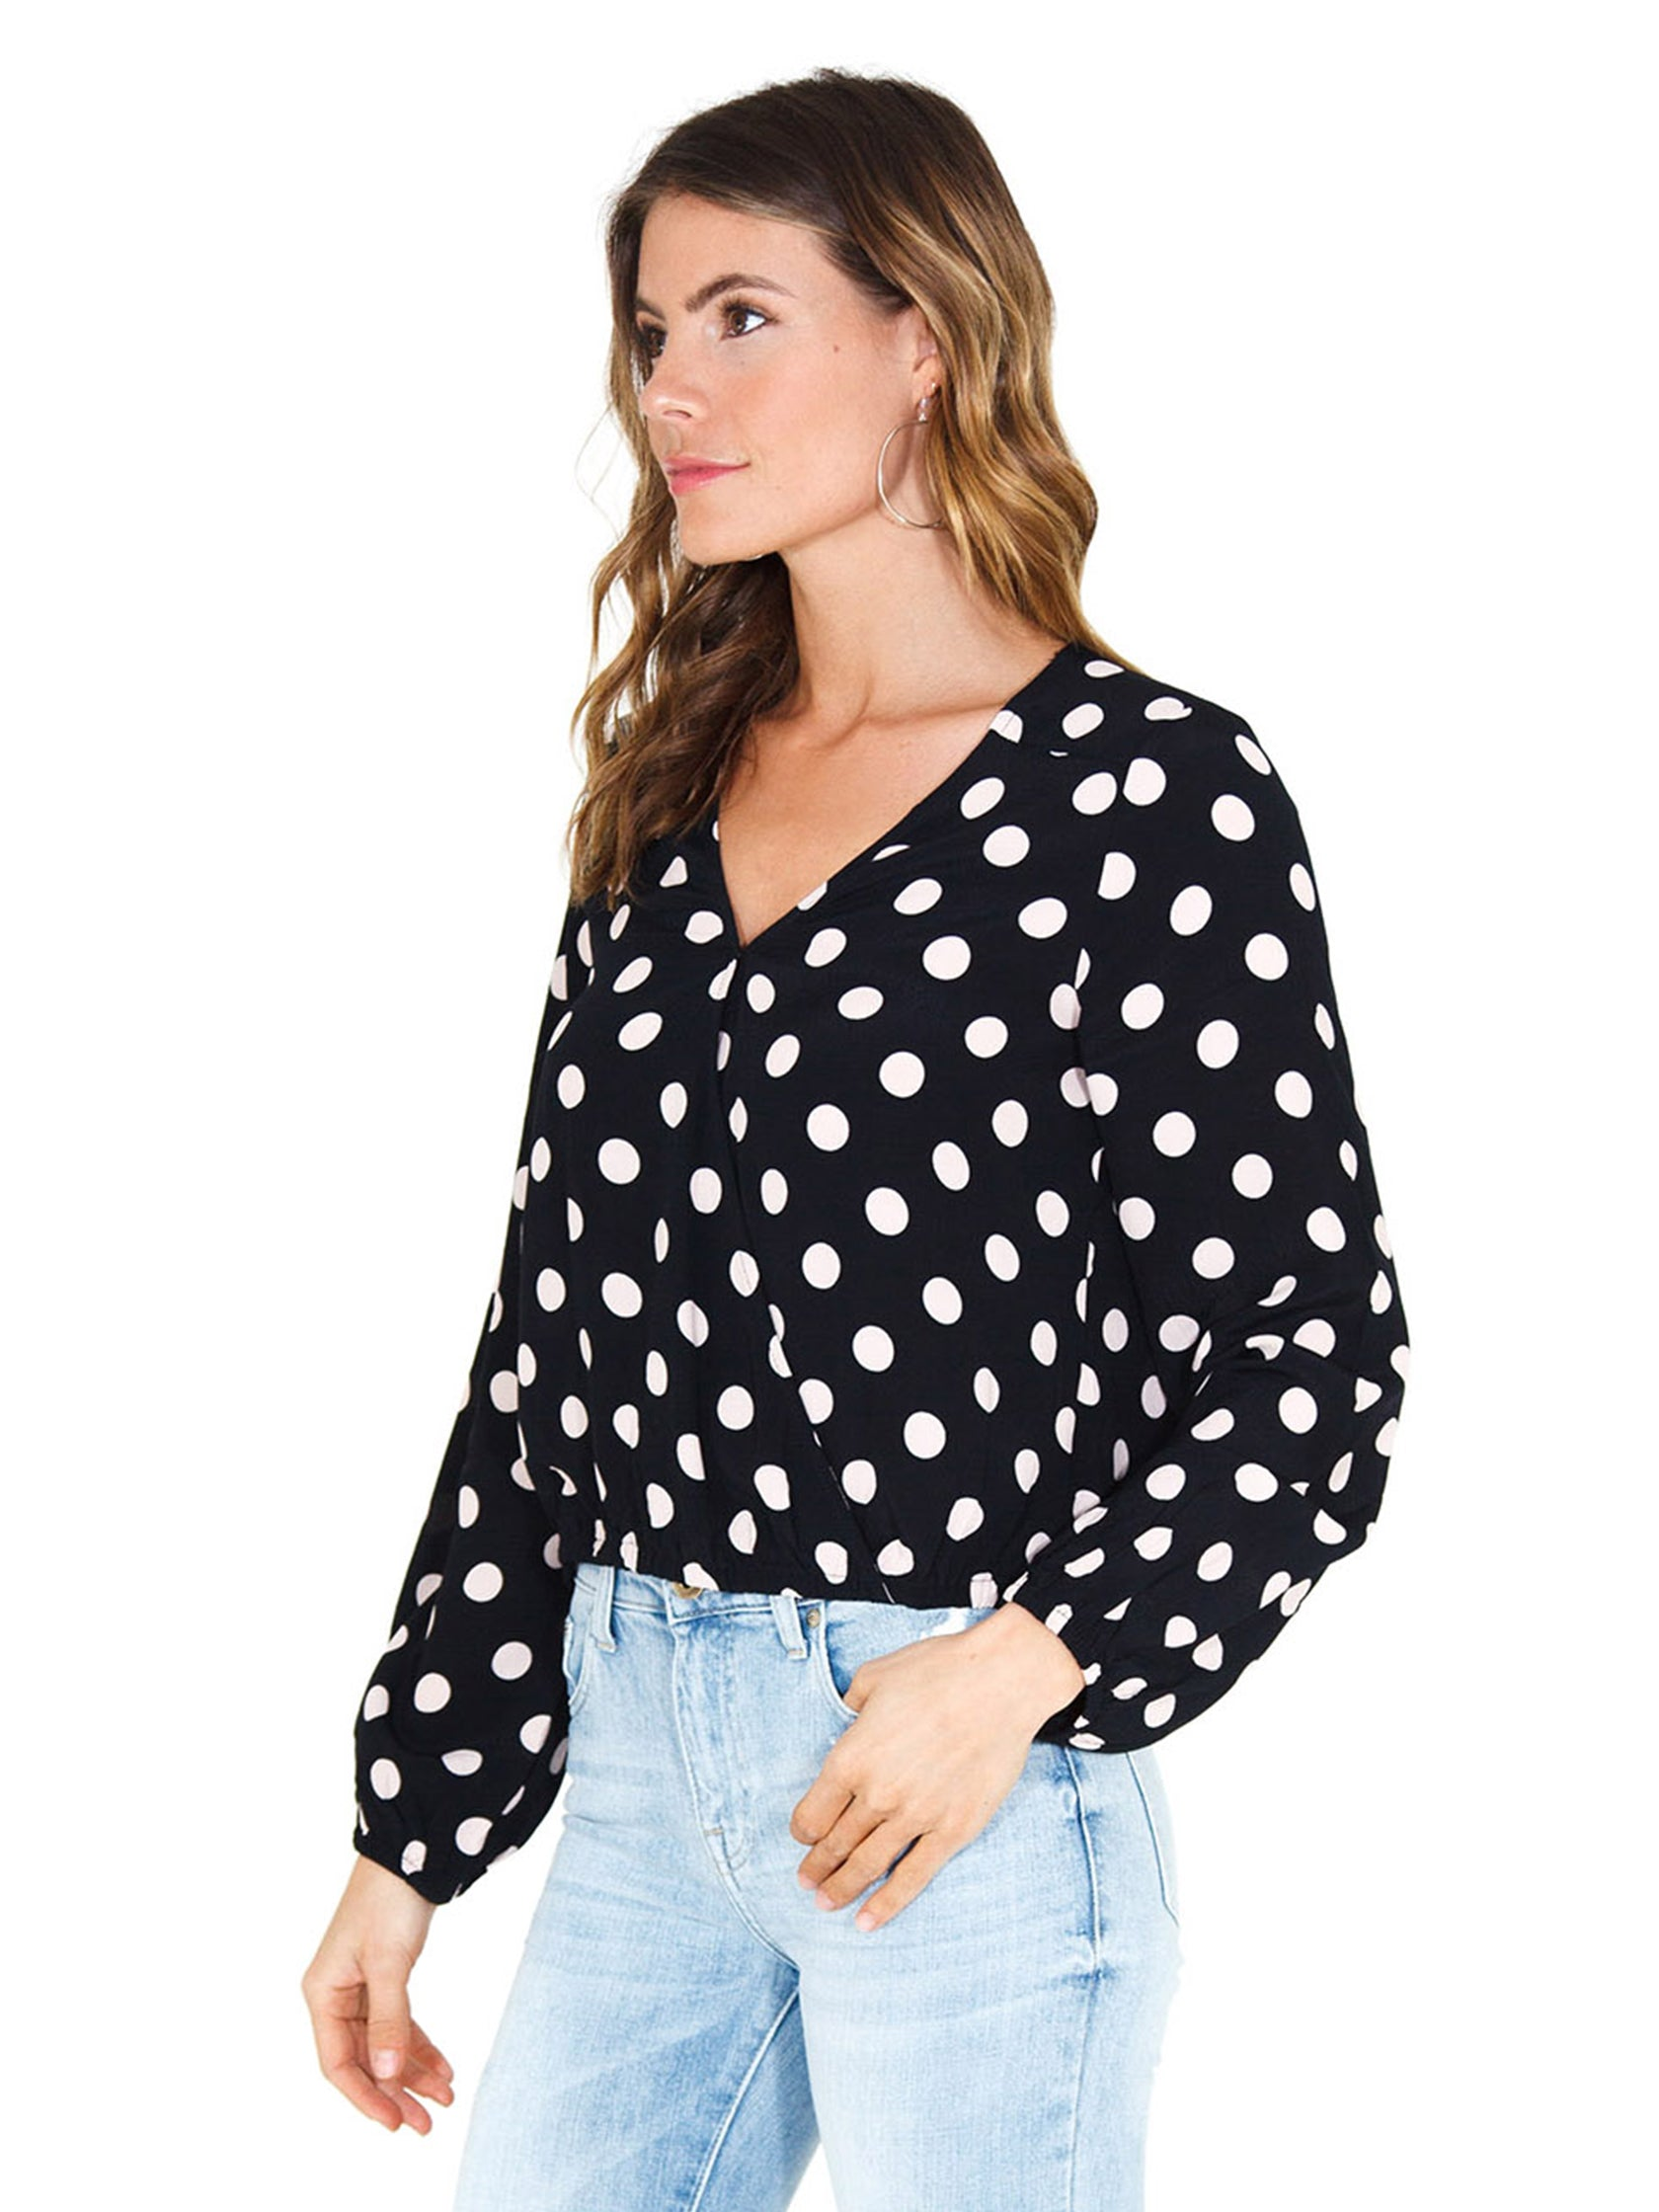 Women wearing a top rental from SANCTUARY called Cori Blouson Sleeve Blouse